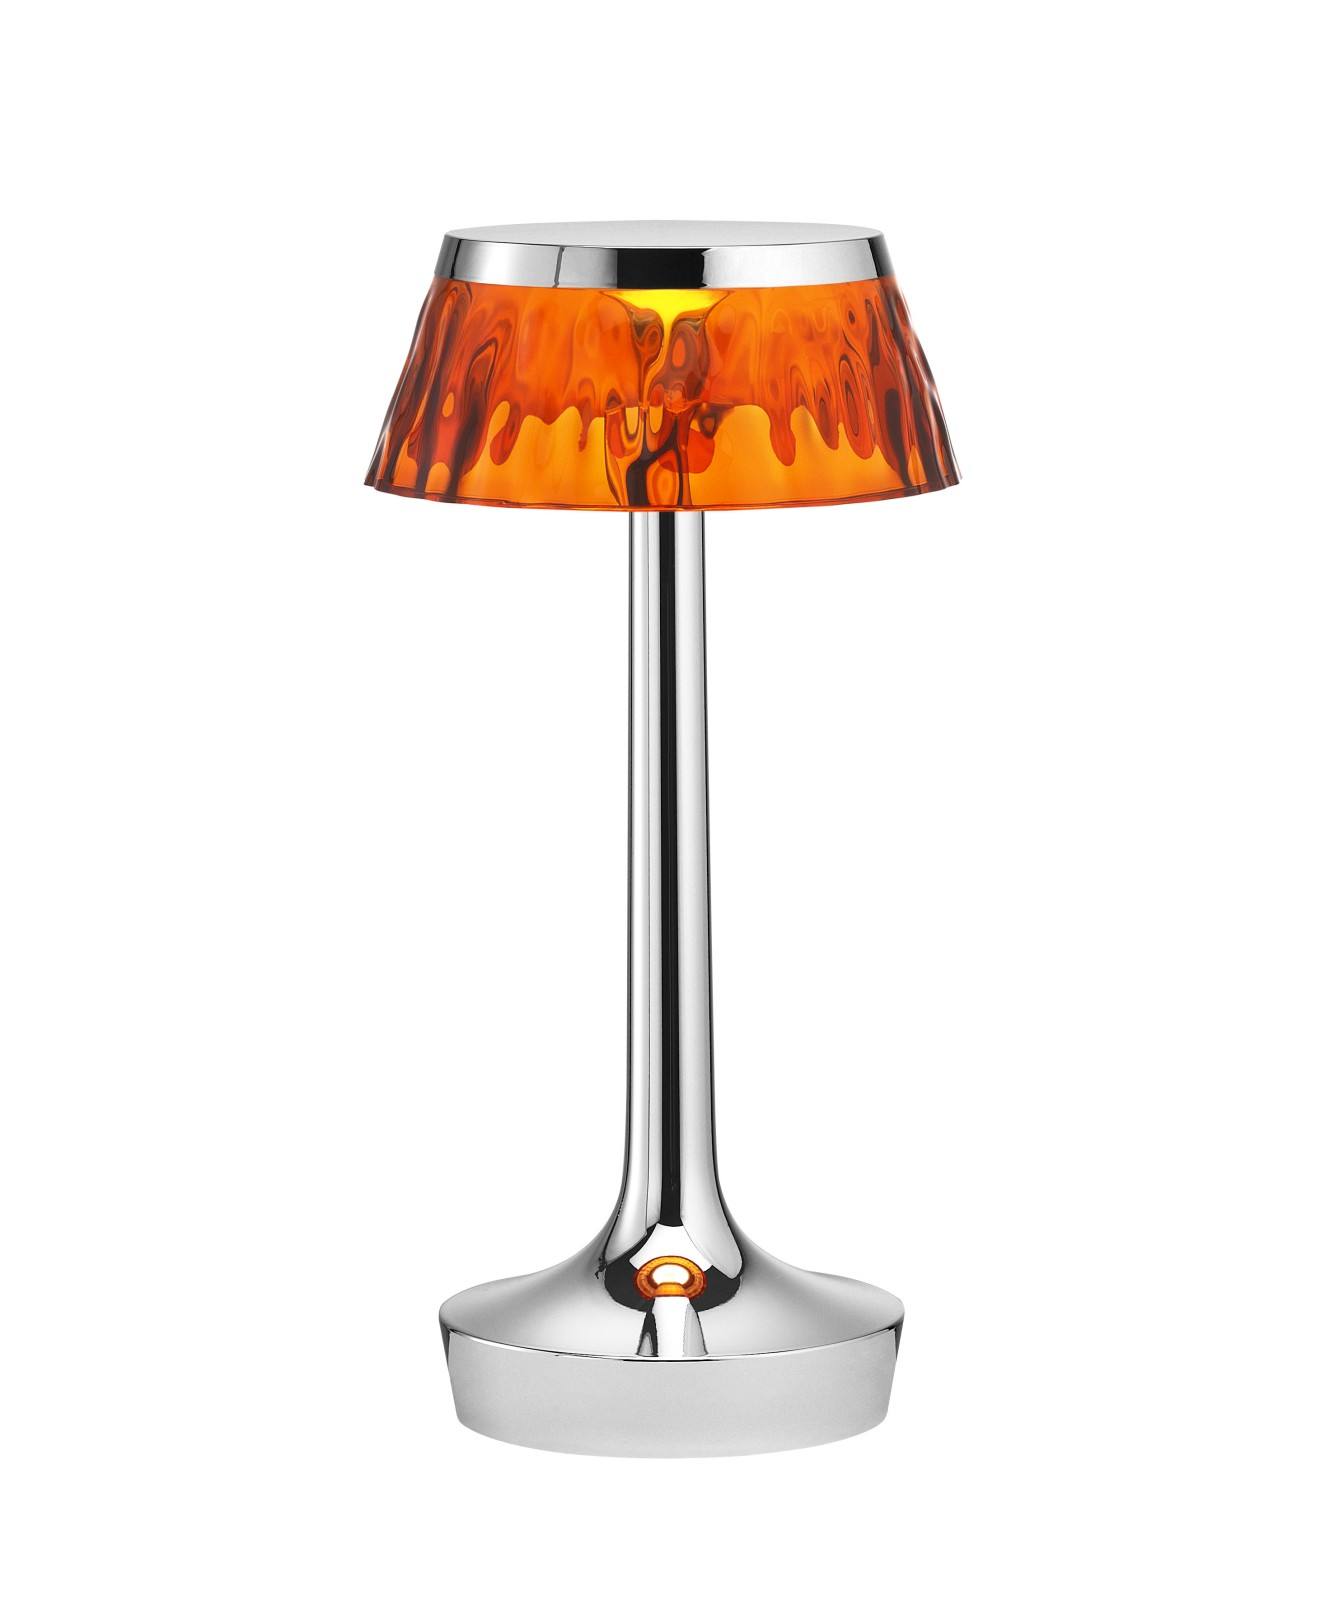 Bon Jour Unplugged Table Lamp Chrome, Amber shade